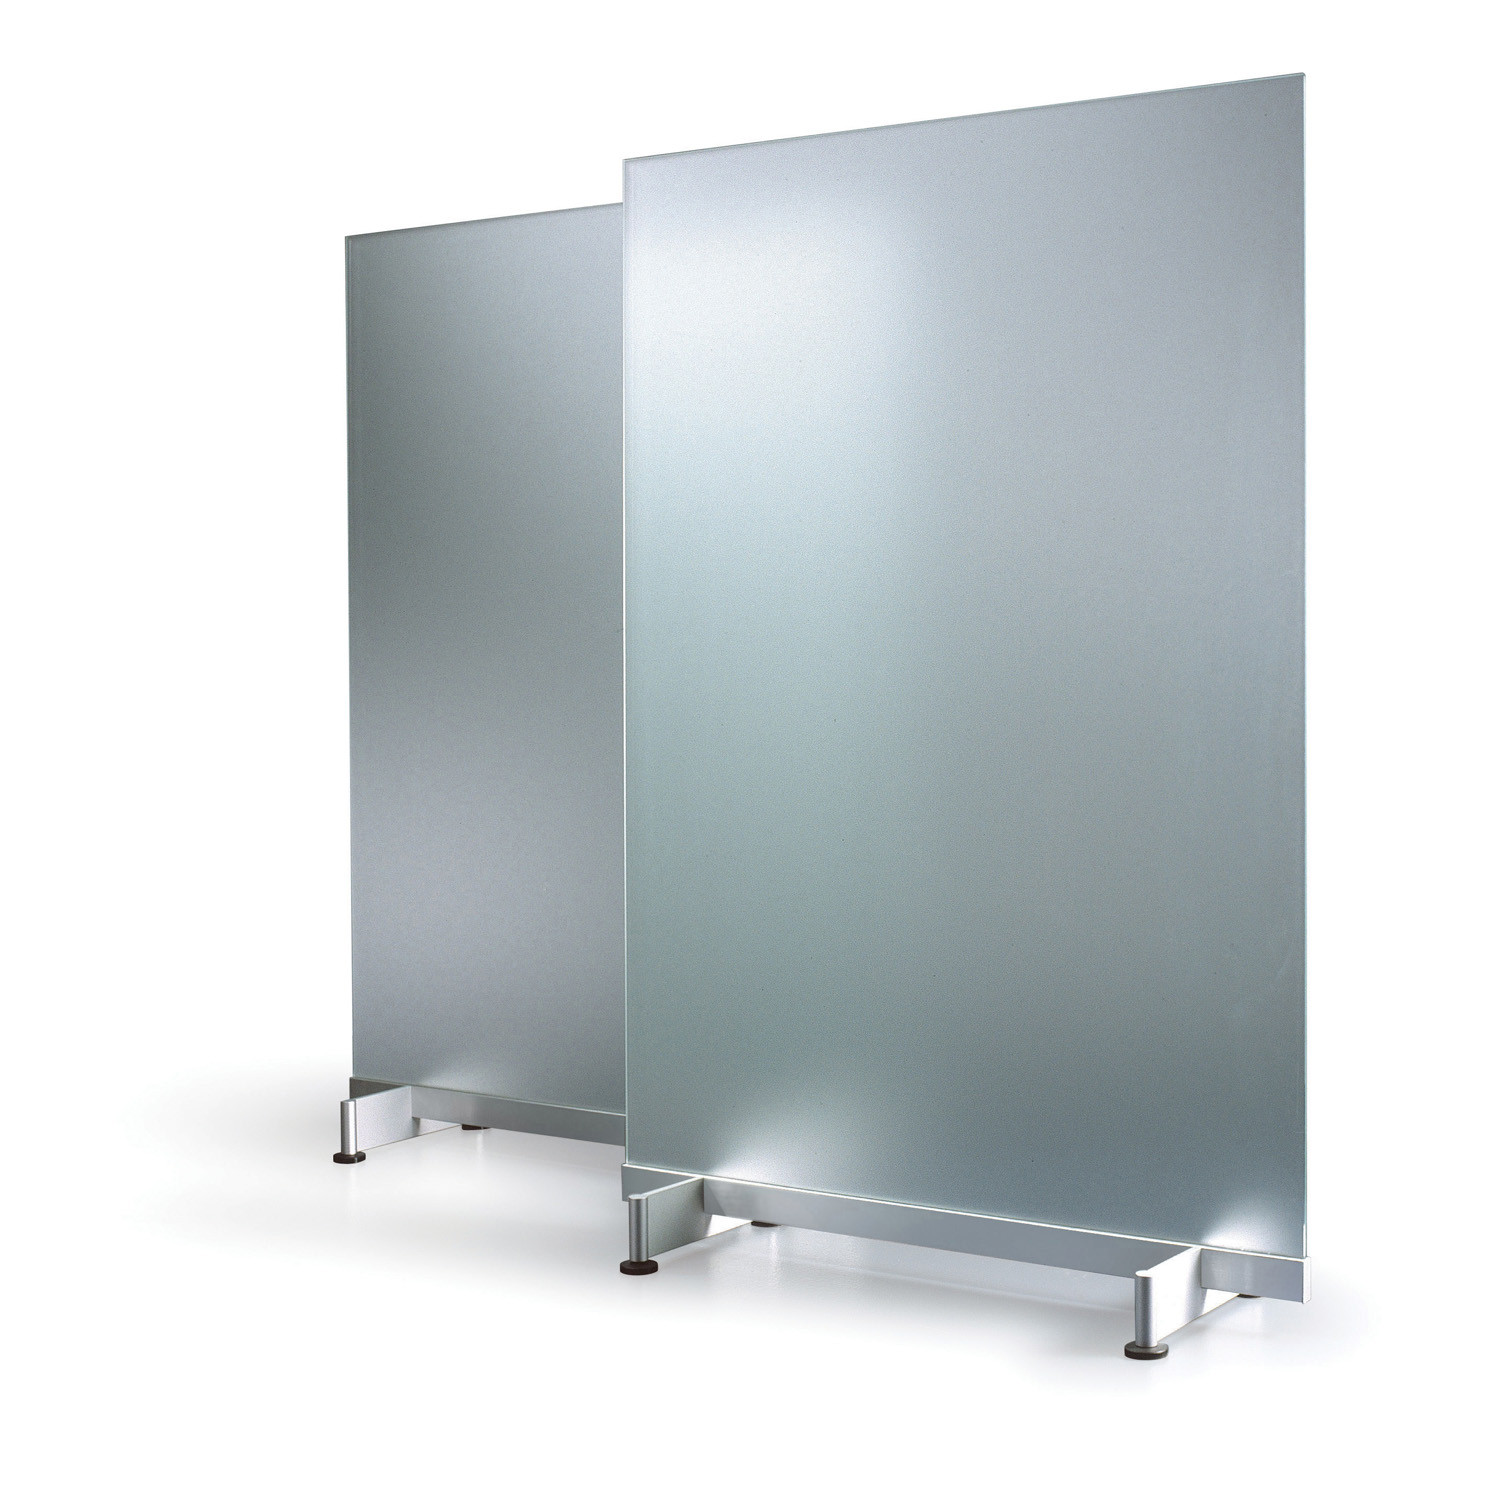 Vip glass room divider